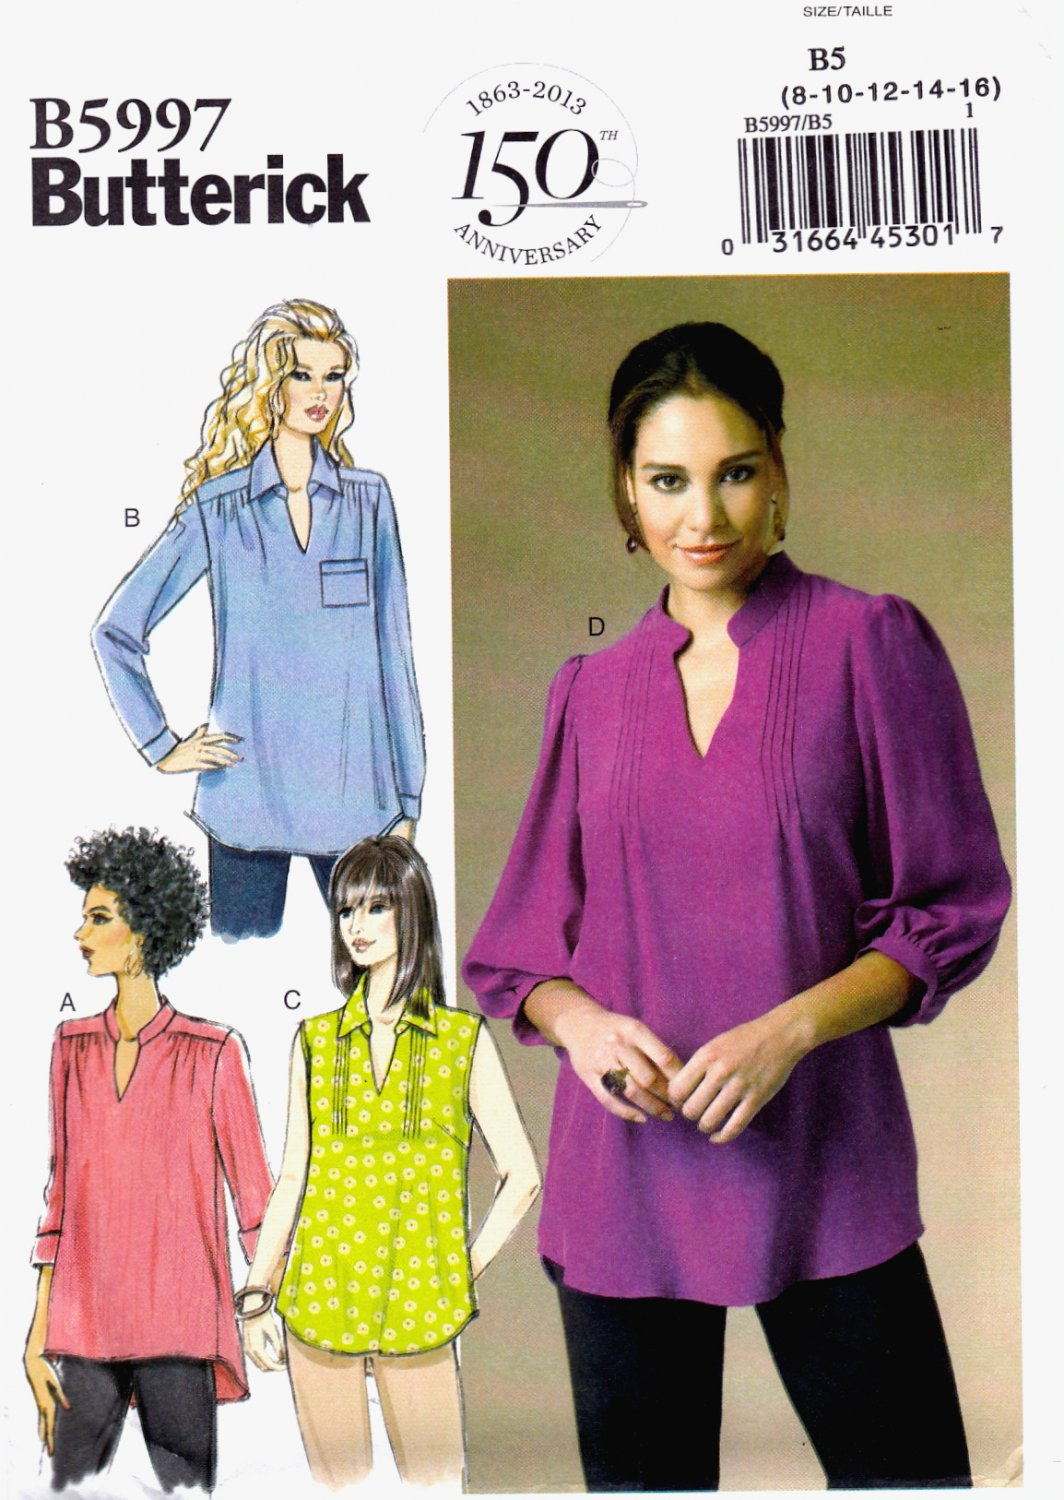 Butterick B5997 Misses Womens Tops Pullover Loose Fitting Sewing Pattern Sizes 8-10-12-14-16